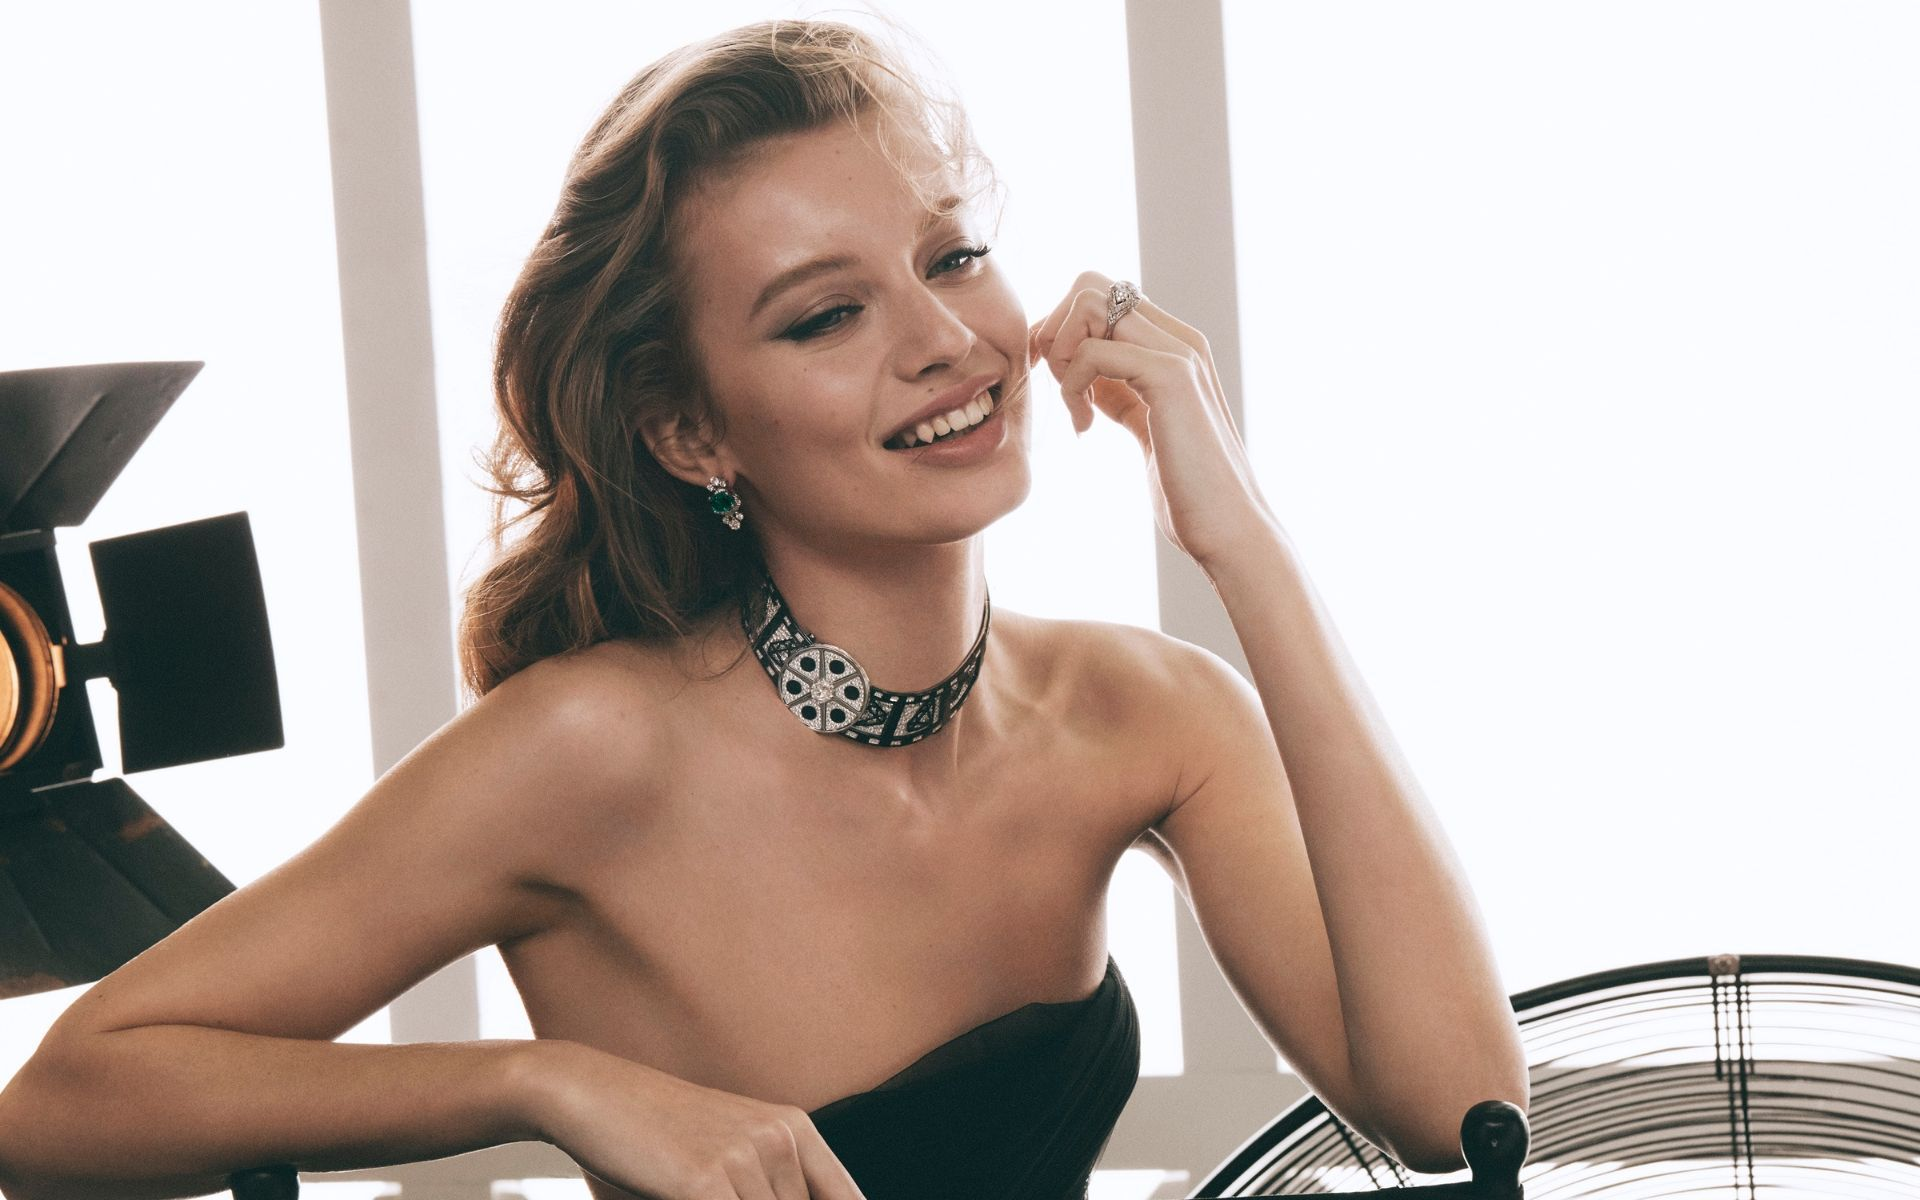 The Cinemagia collection features movie-inspired jewellery, like this quirky film strip choker, that wouldn't look out of place on the red carpet. (Photo credit: Bvlgari)